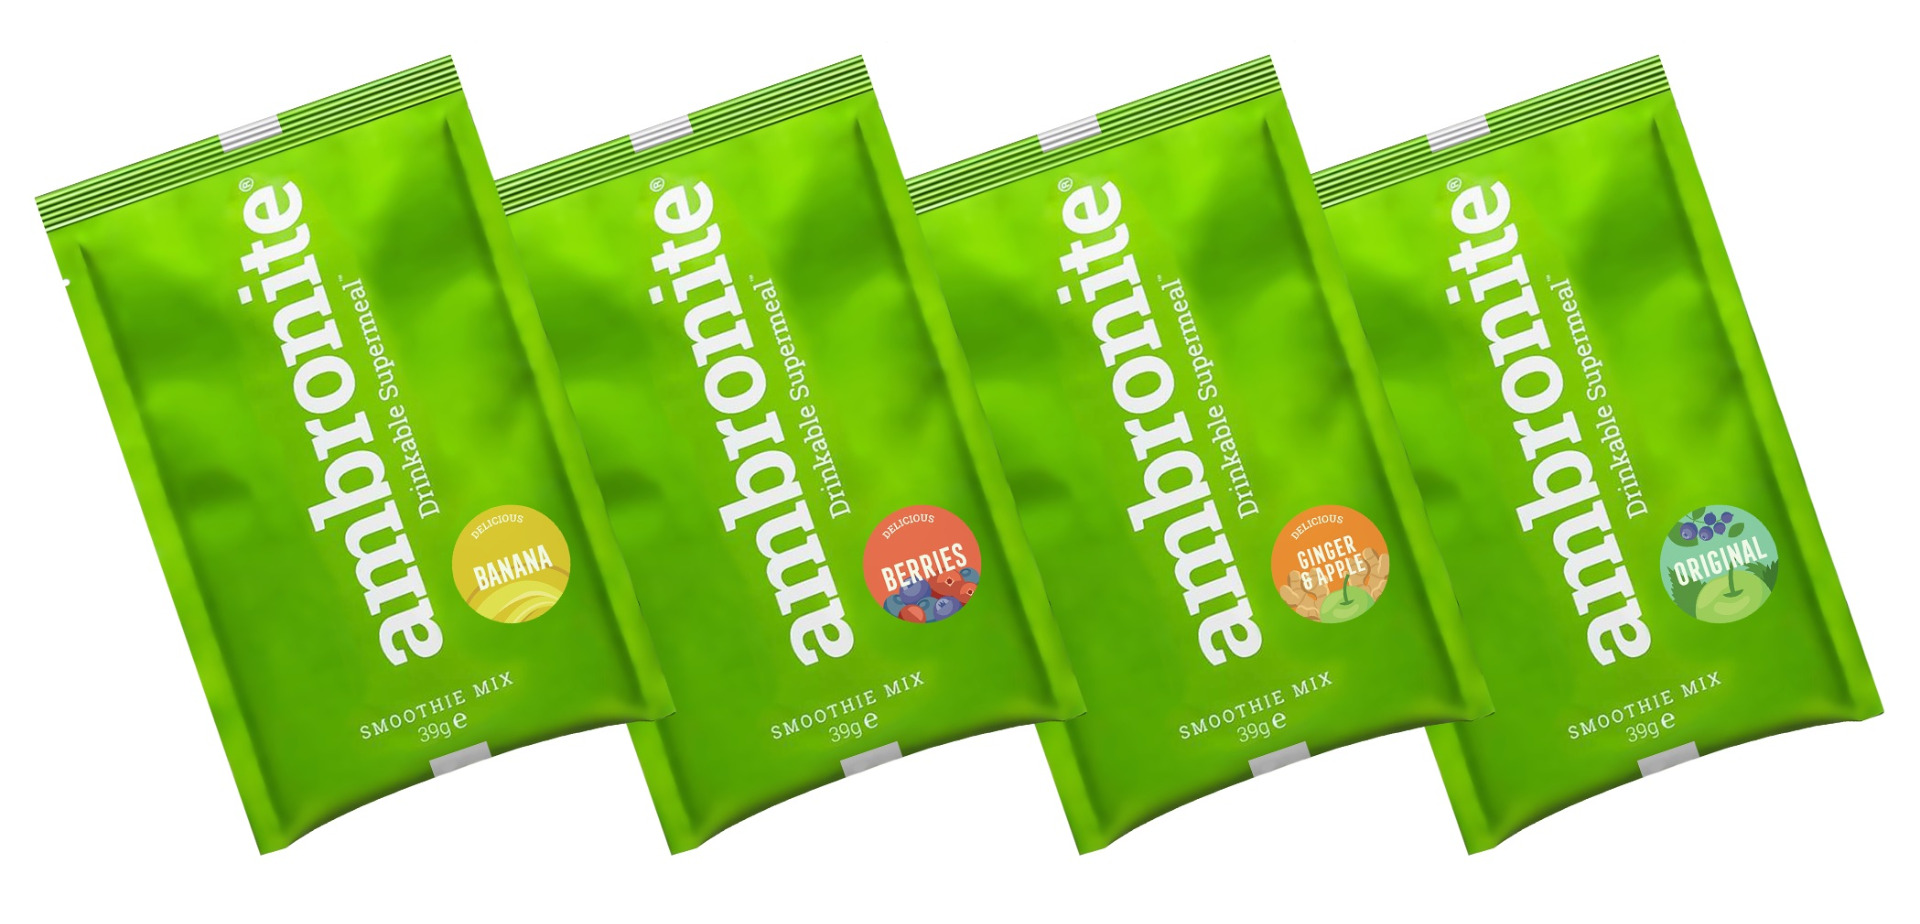 Ambronite 4x165 kcal Supermeals Sample